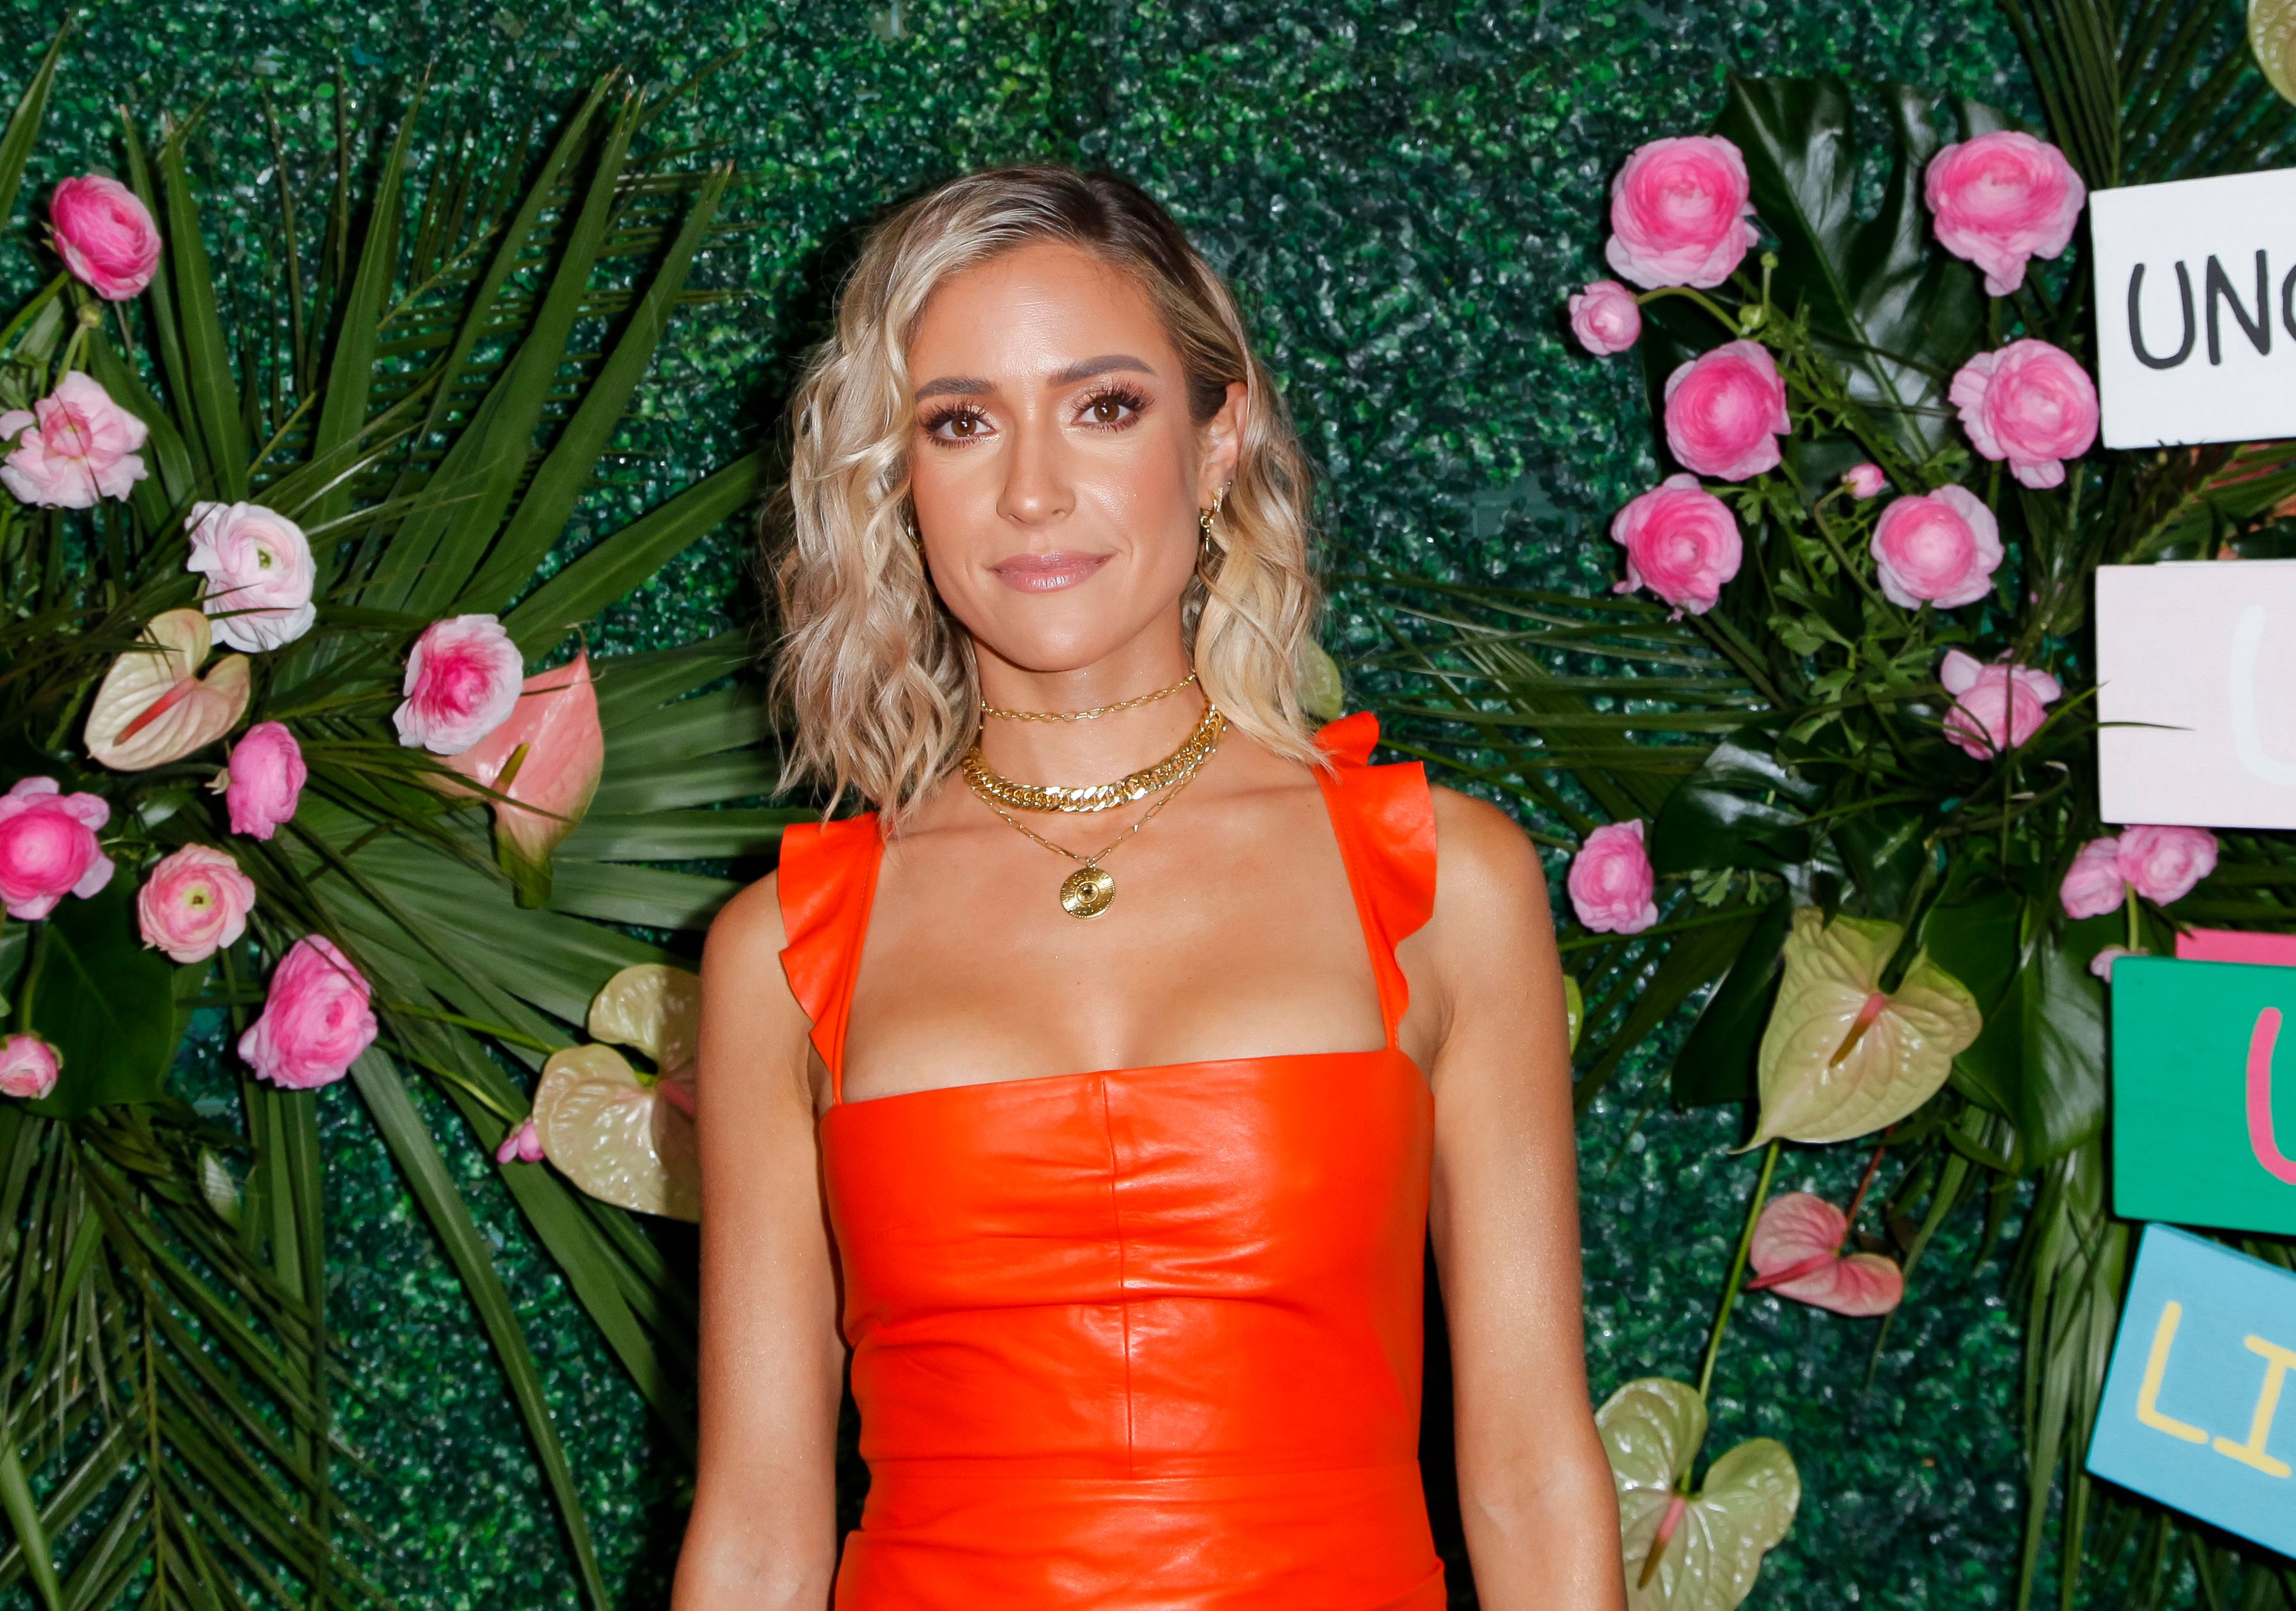 Kristin Cavallari poses in front of a grass wall